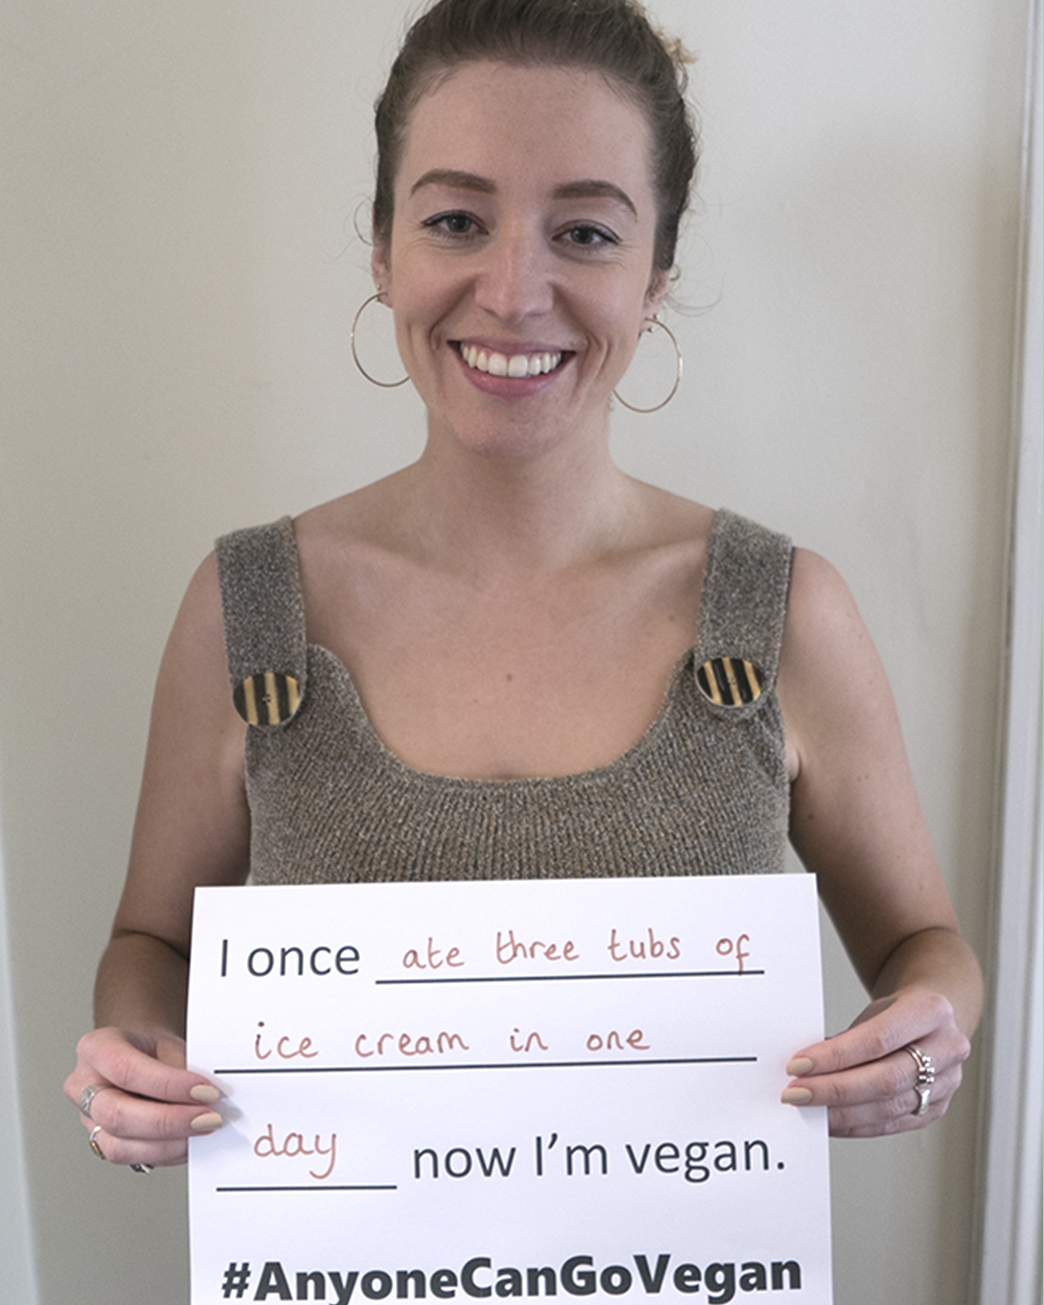 100+ vegans share their stories to prove #AnyoneCanGoVegan | Totally